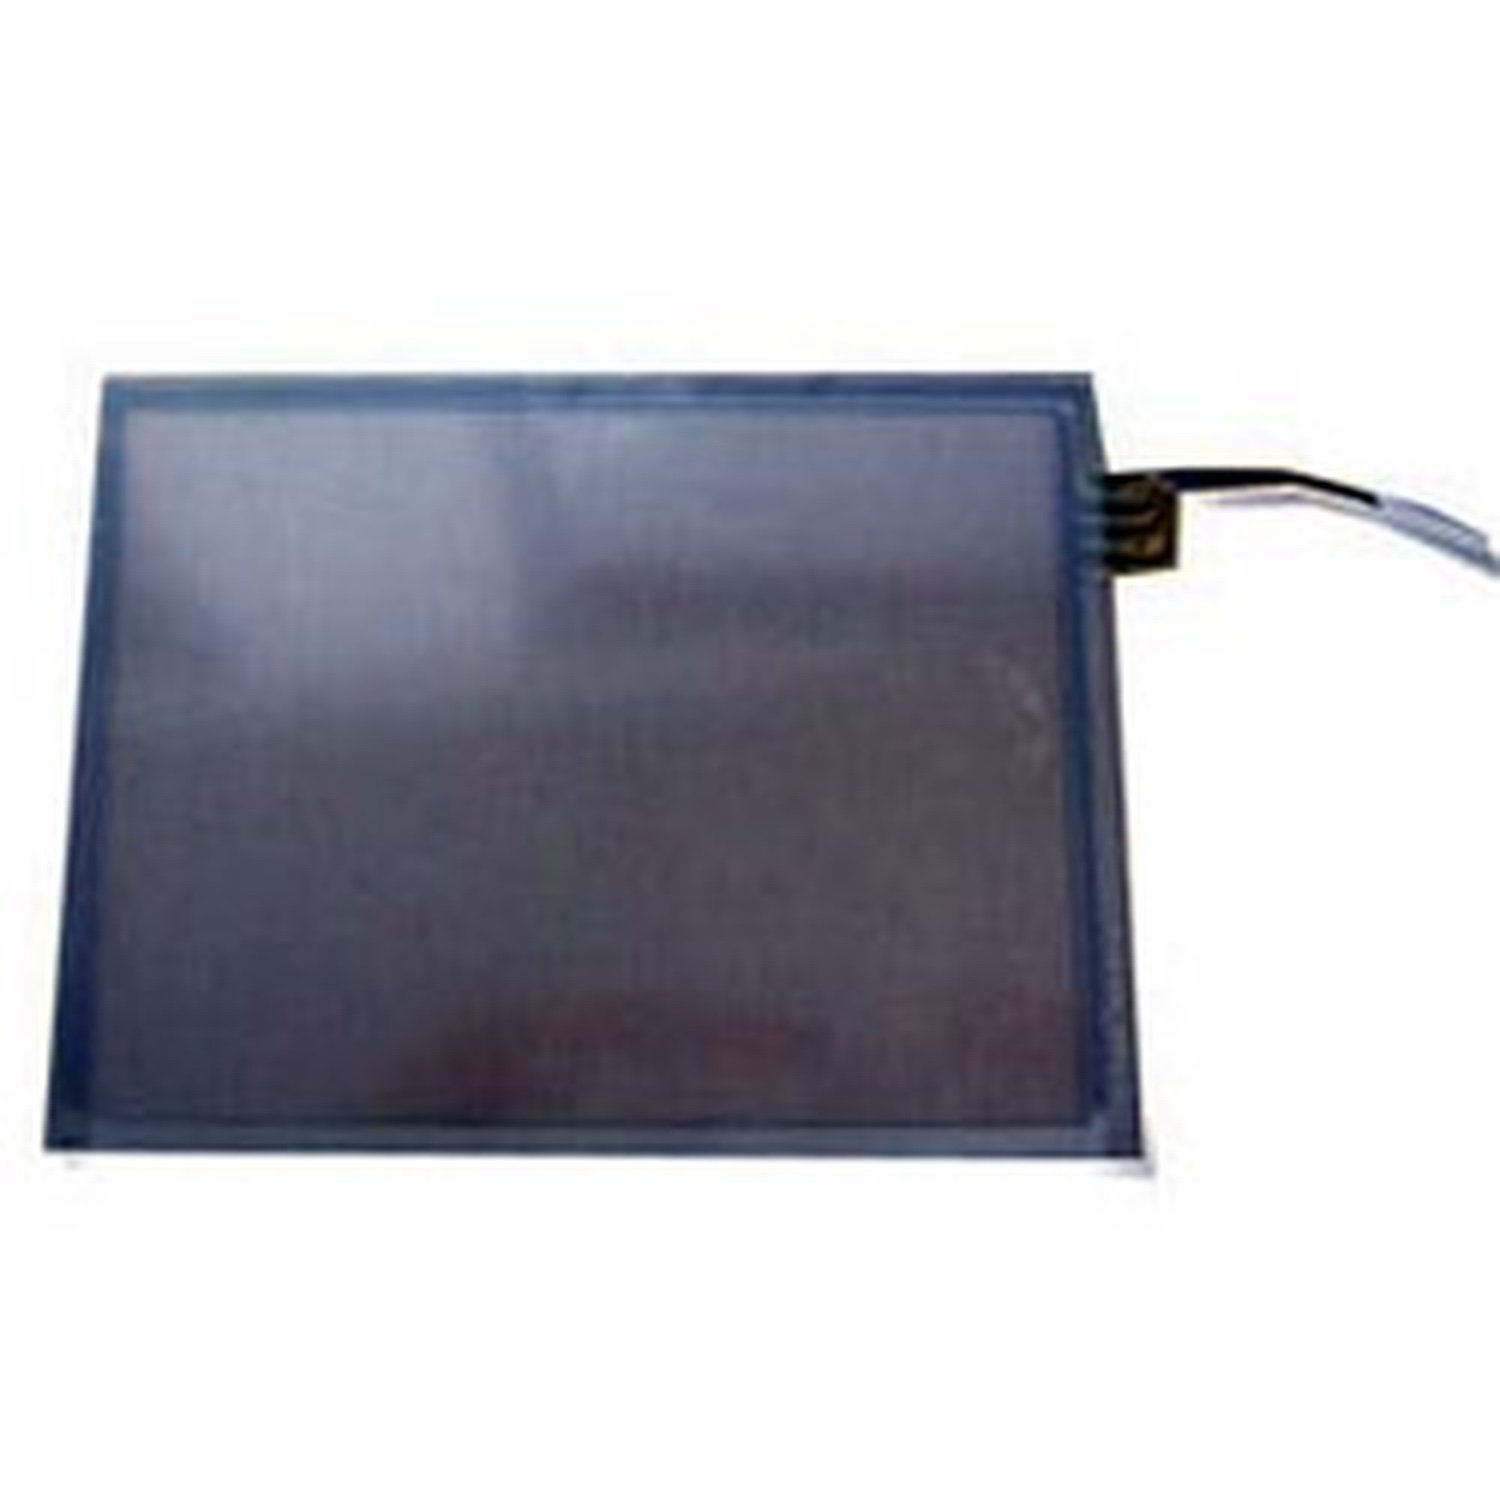 TFT LCD FOR NDS * BOTTOM dia * (touch screen)